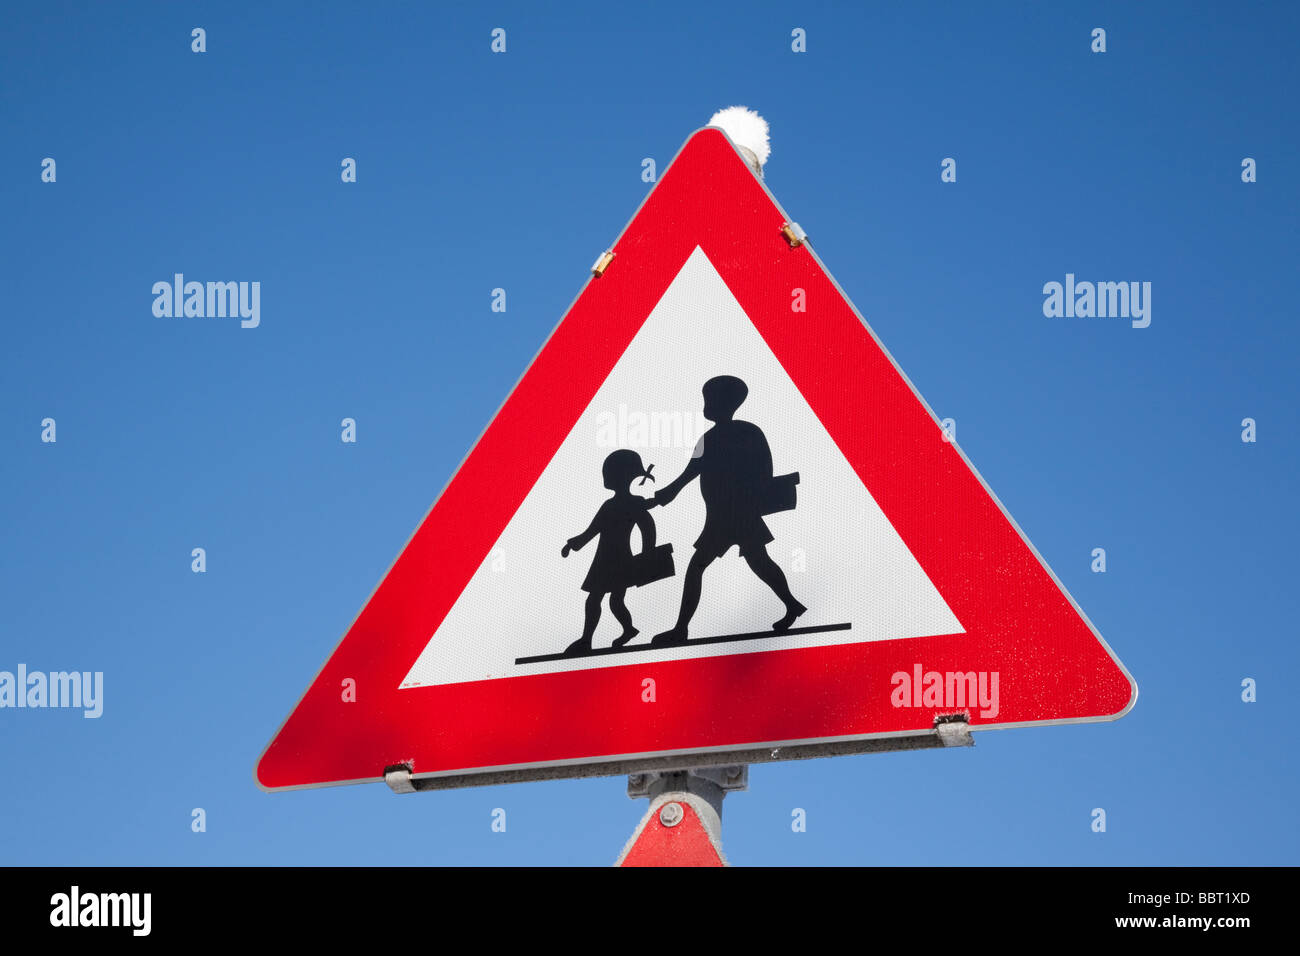 Triangular warning sign for children crossing road against blue sky background. UK Britain Europe - Stock Image